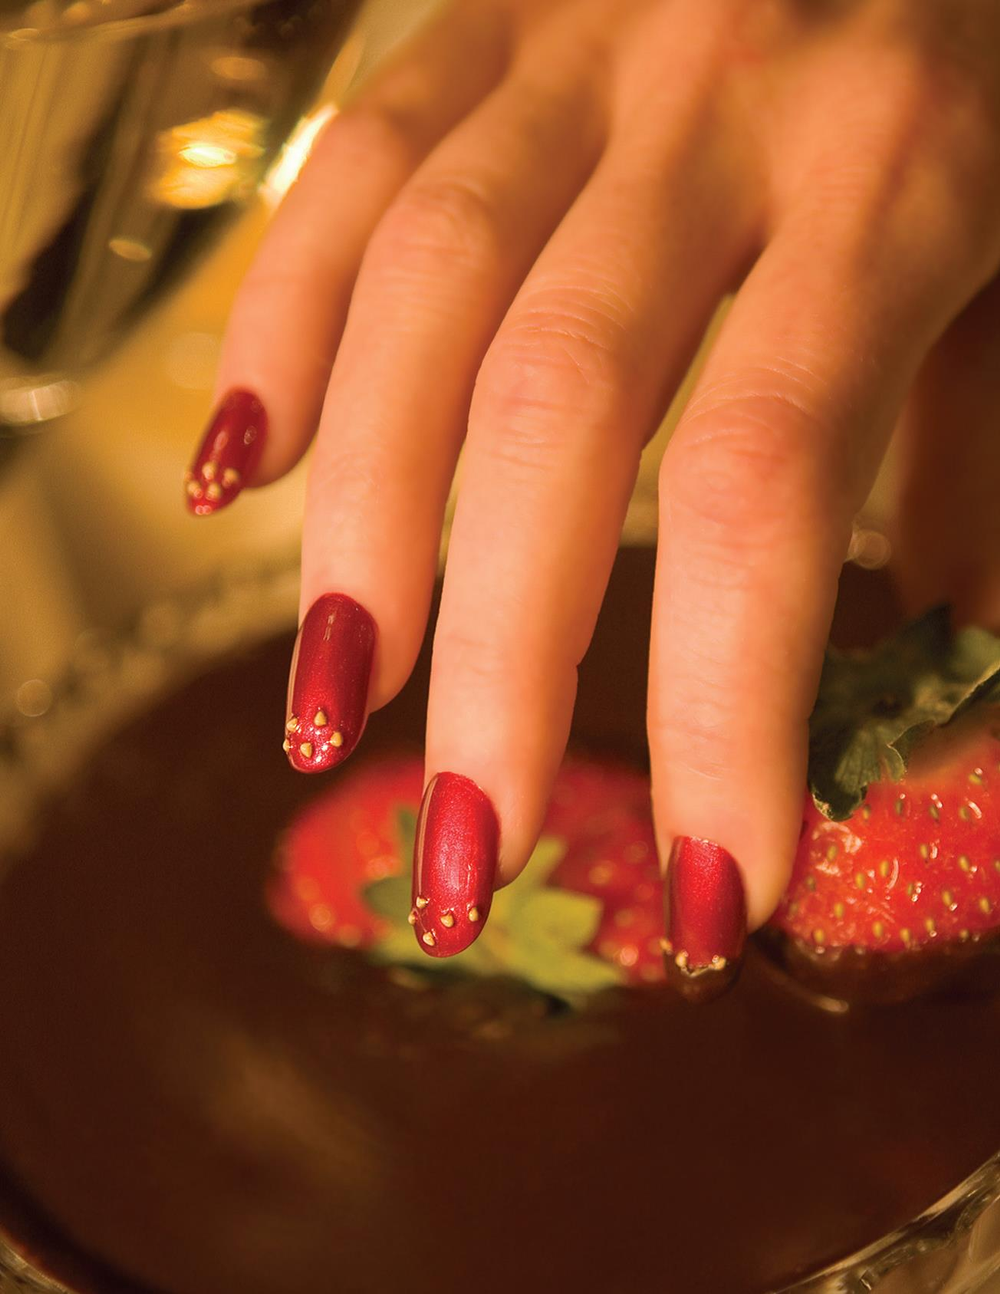 <p>Hoelscher submitted two images&nbsp;featuring her strawberry nails.&nbsp;Deciding which one belonged on&nbsp;the cover was no easy task.</p>